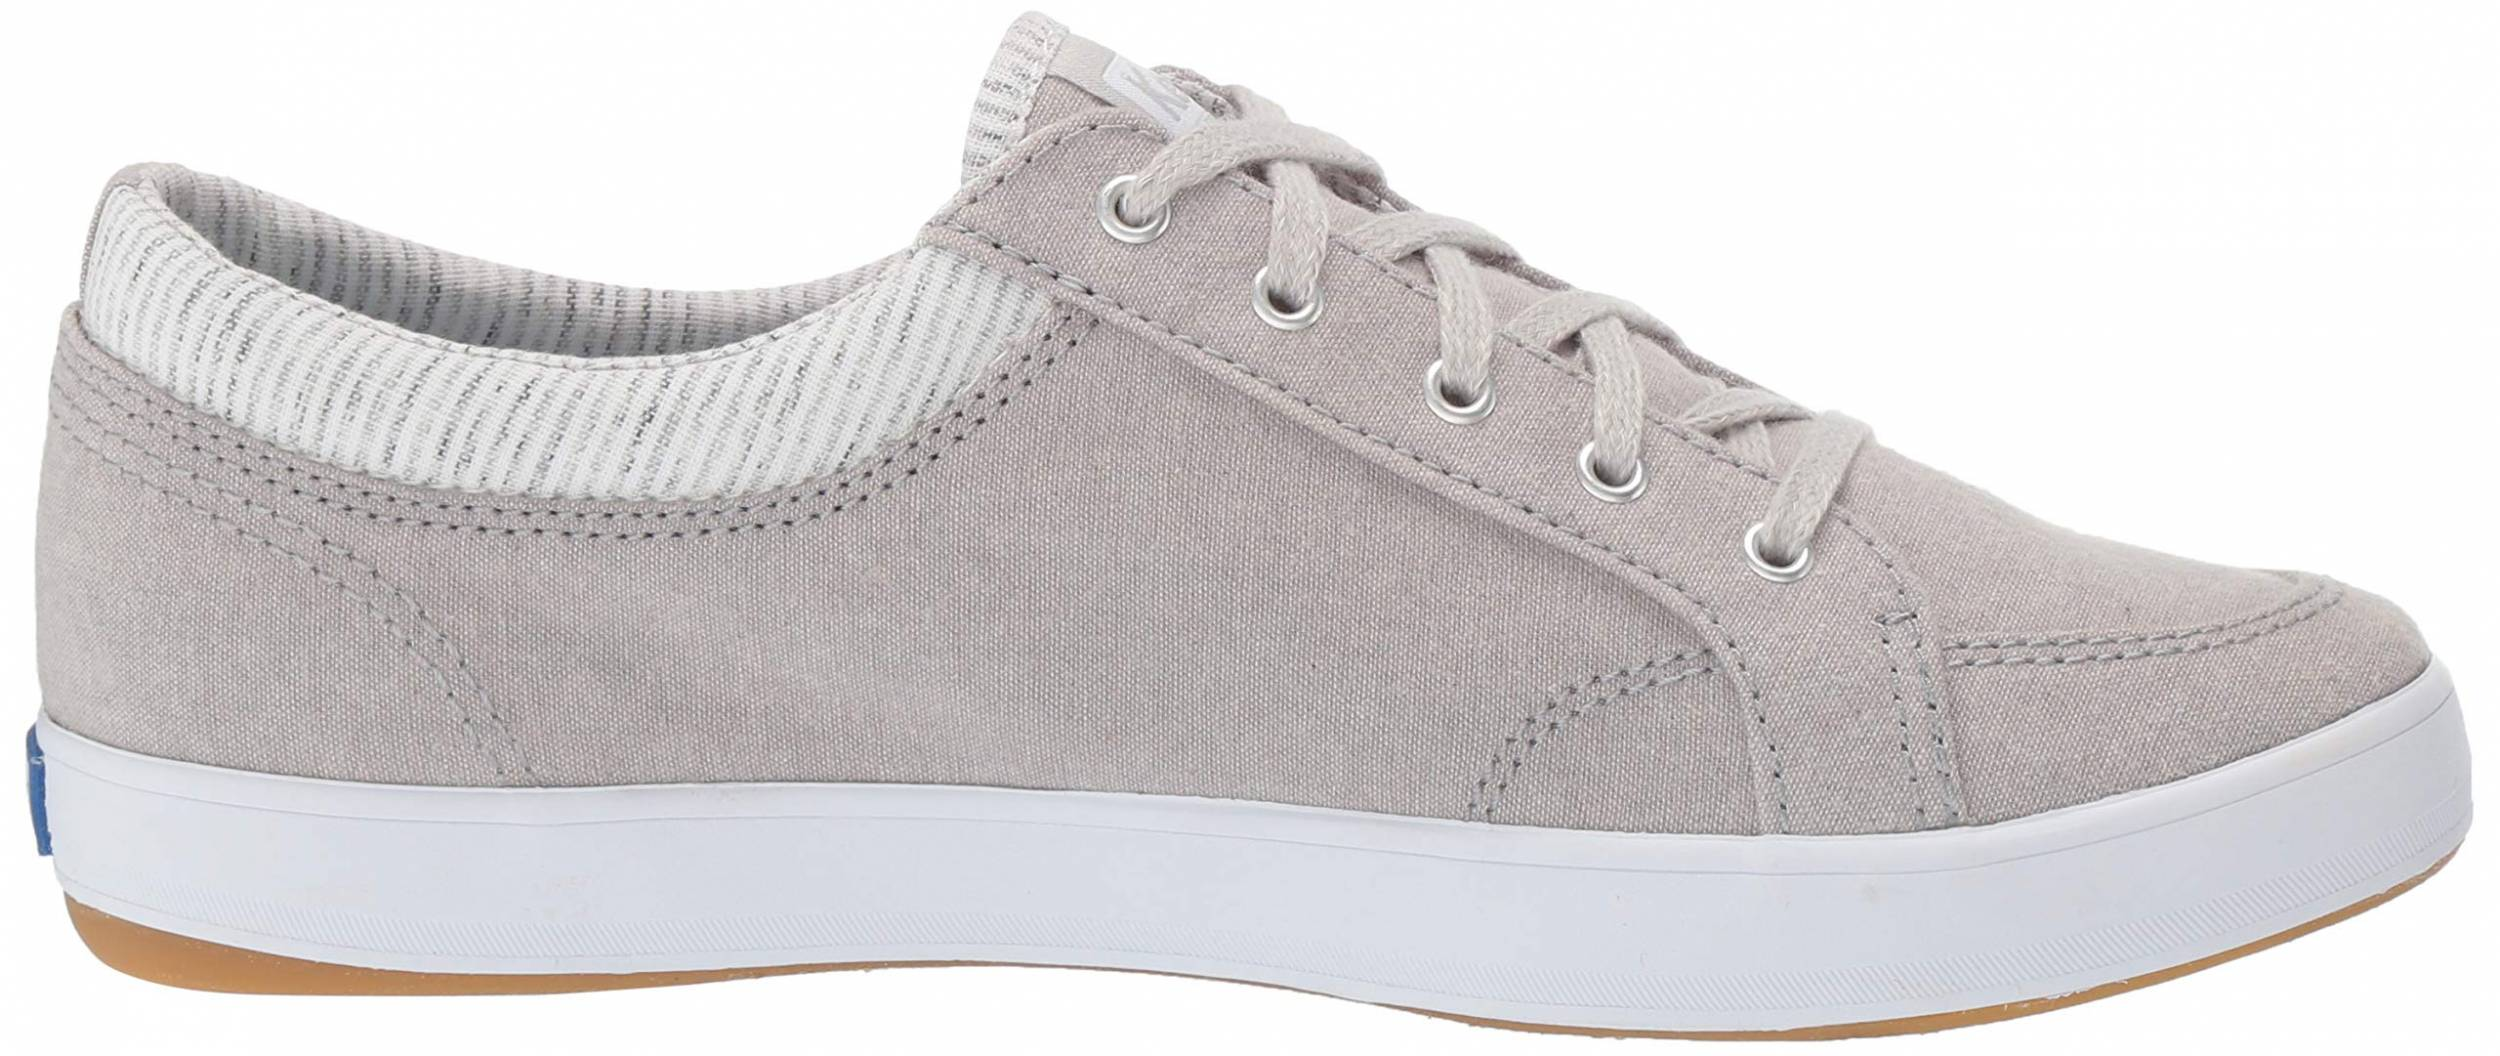 Only $18 + Review of Keds Center